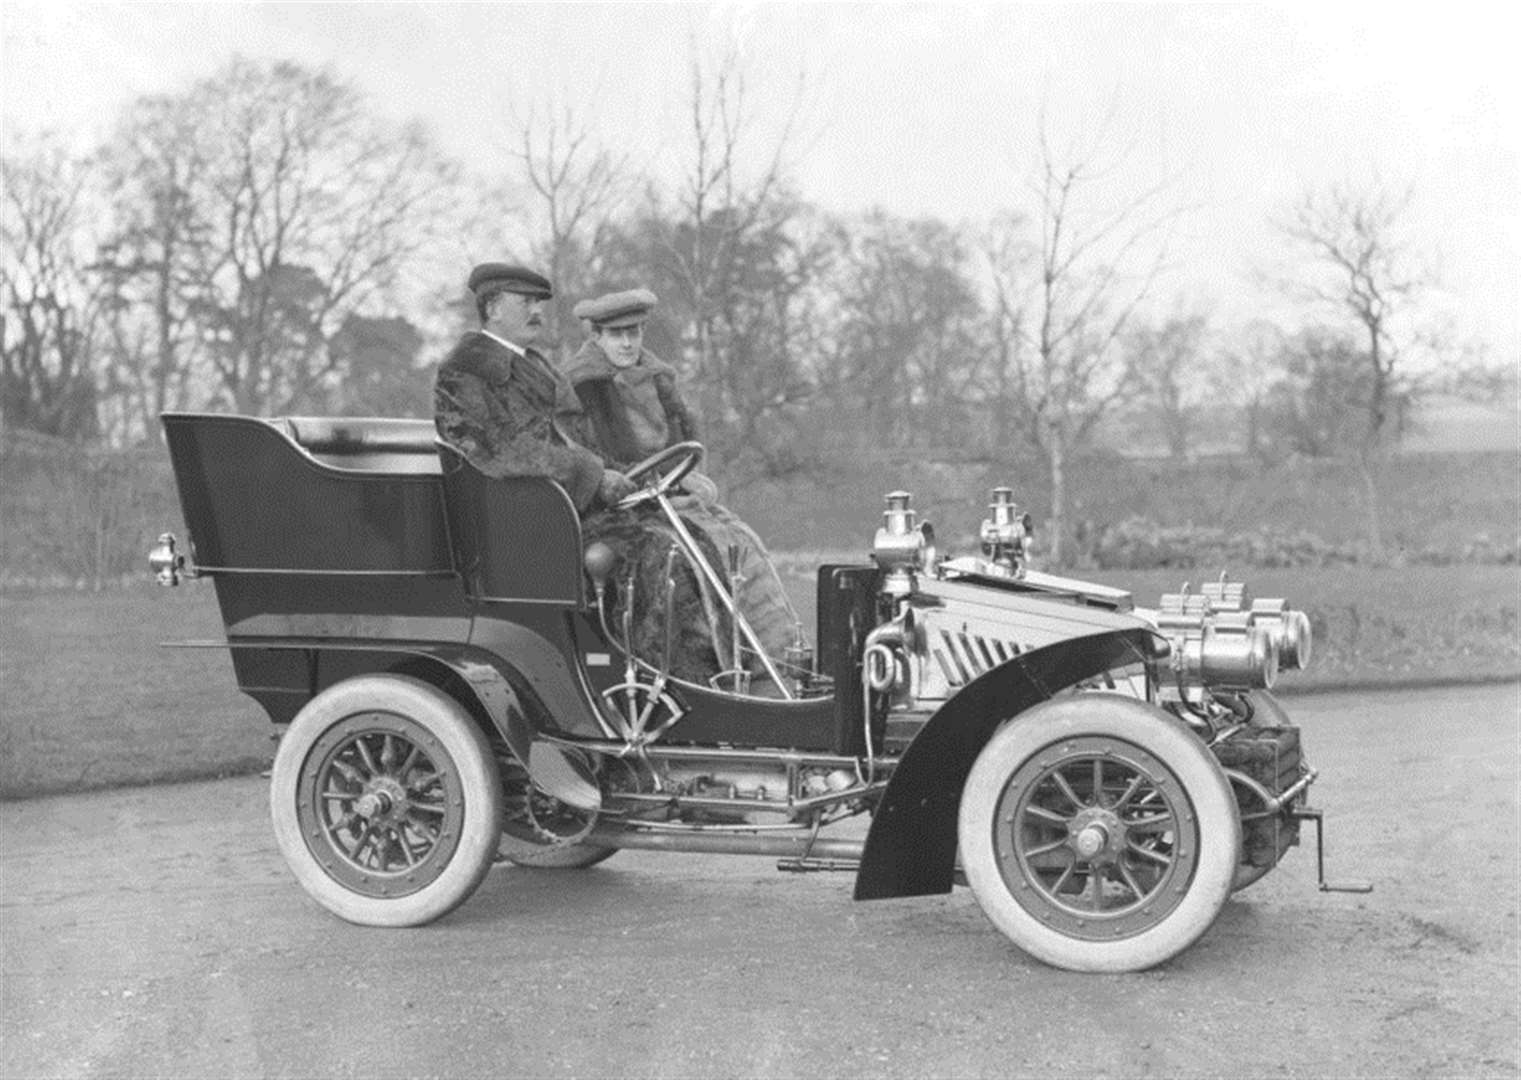 NOSTALGIA: Mr & Mrs Charters and their motor car – from the Spanton Jarman collection